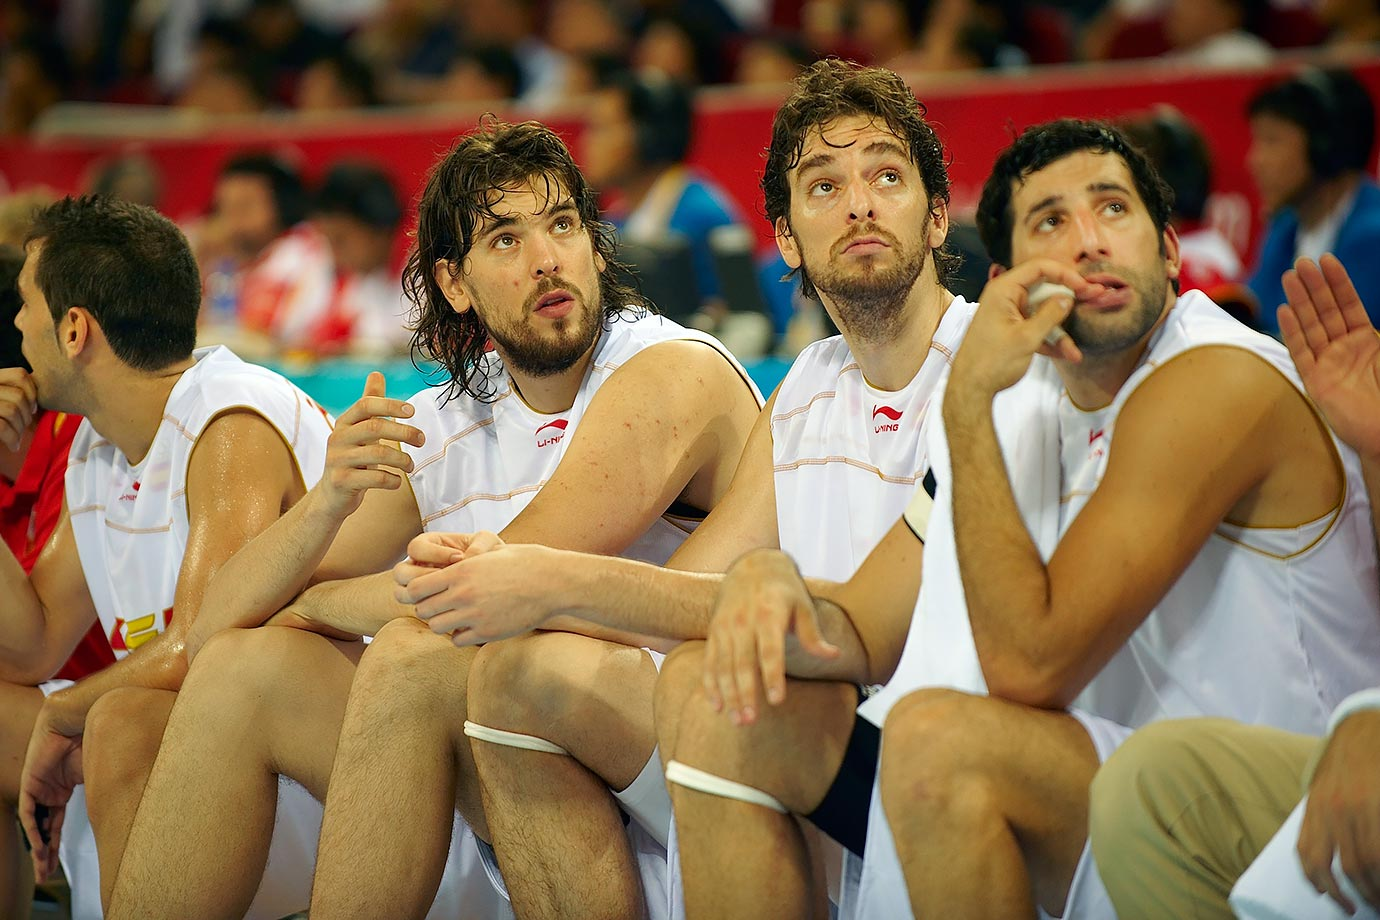 Beijing Summer Olympics — Spain vs. Greece